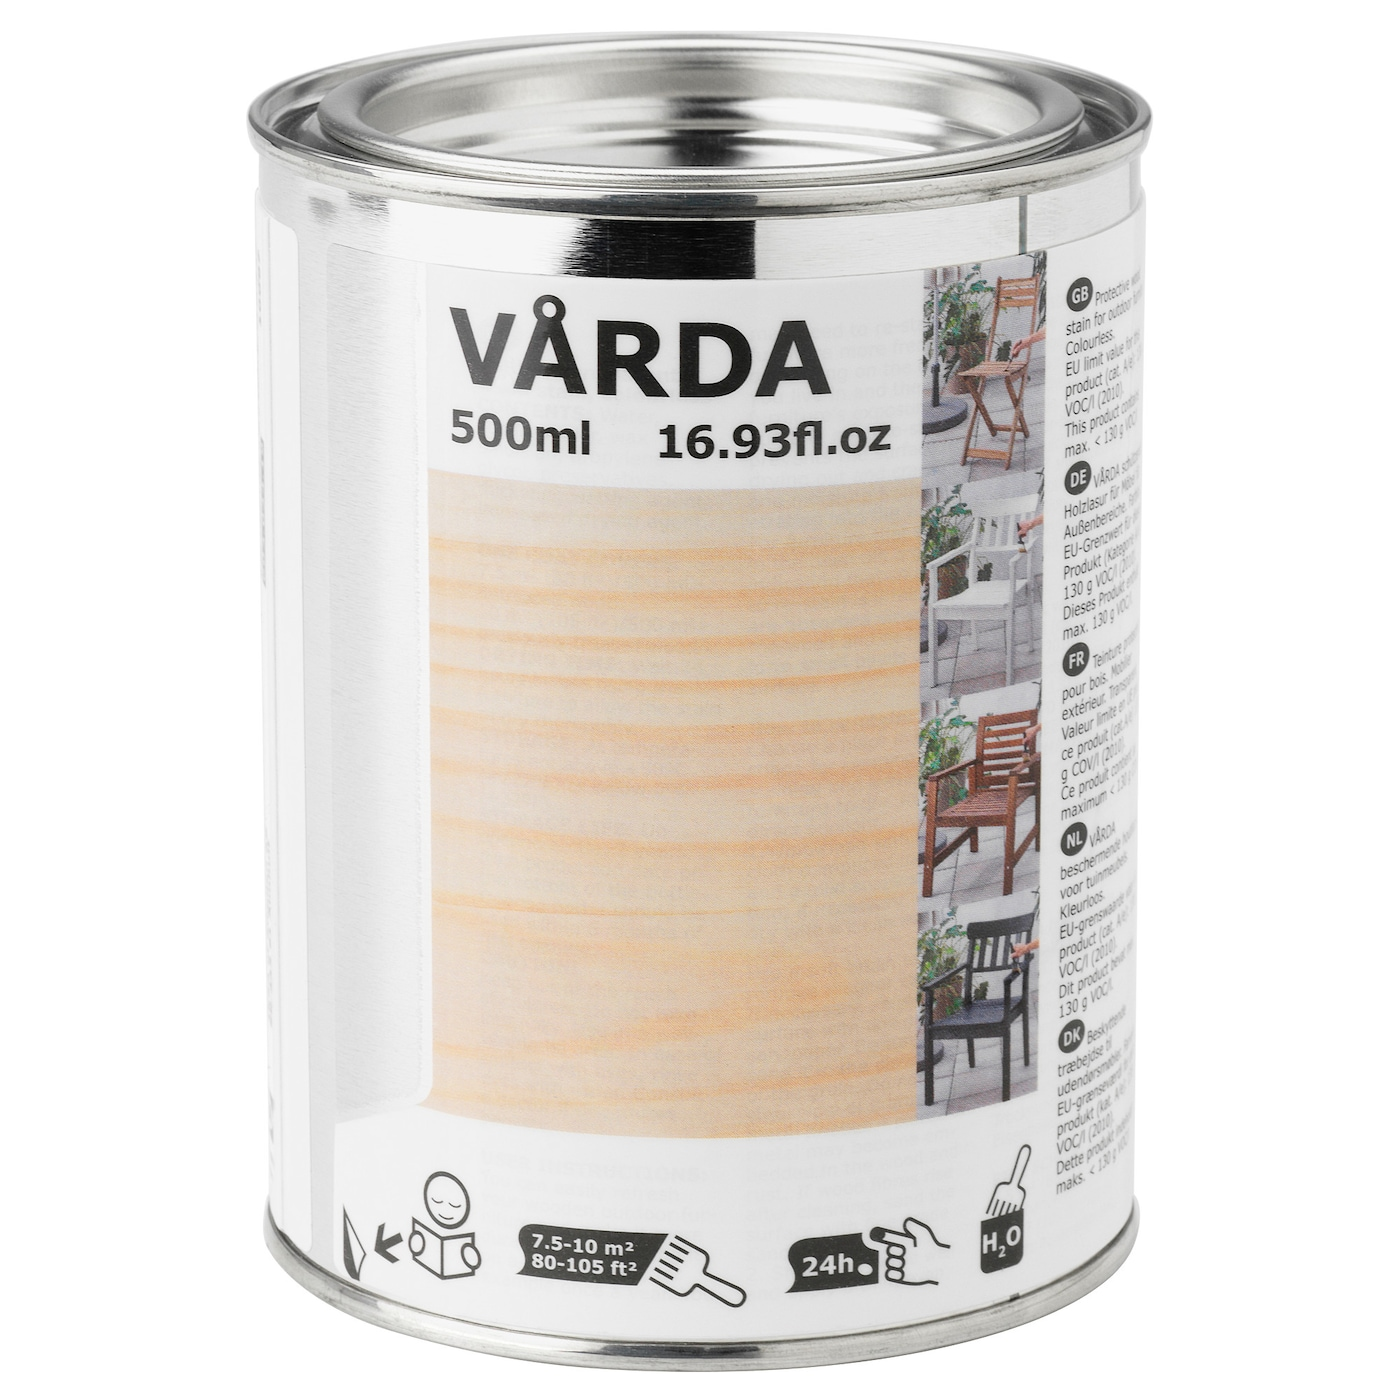 IKEA VÅRDA wood stain, outdoor use